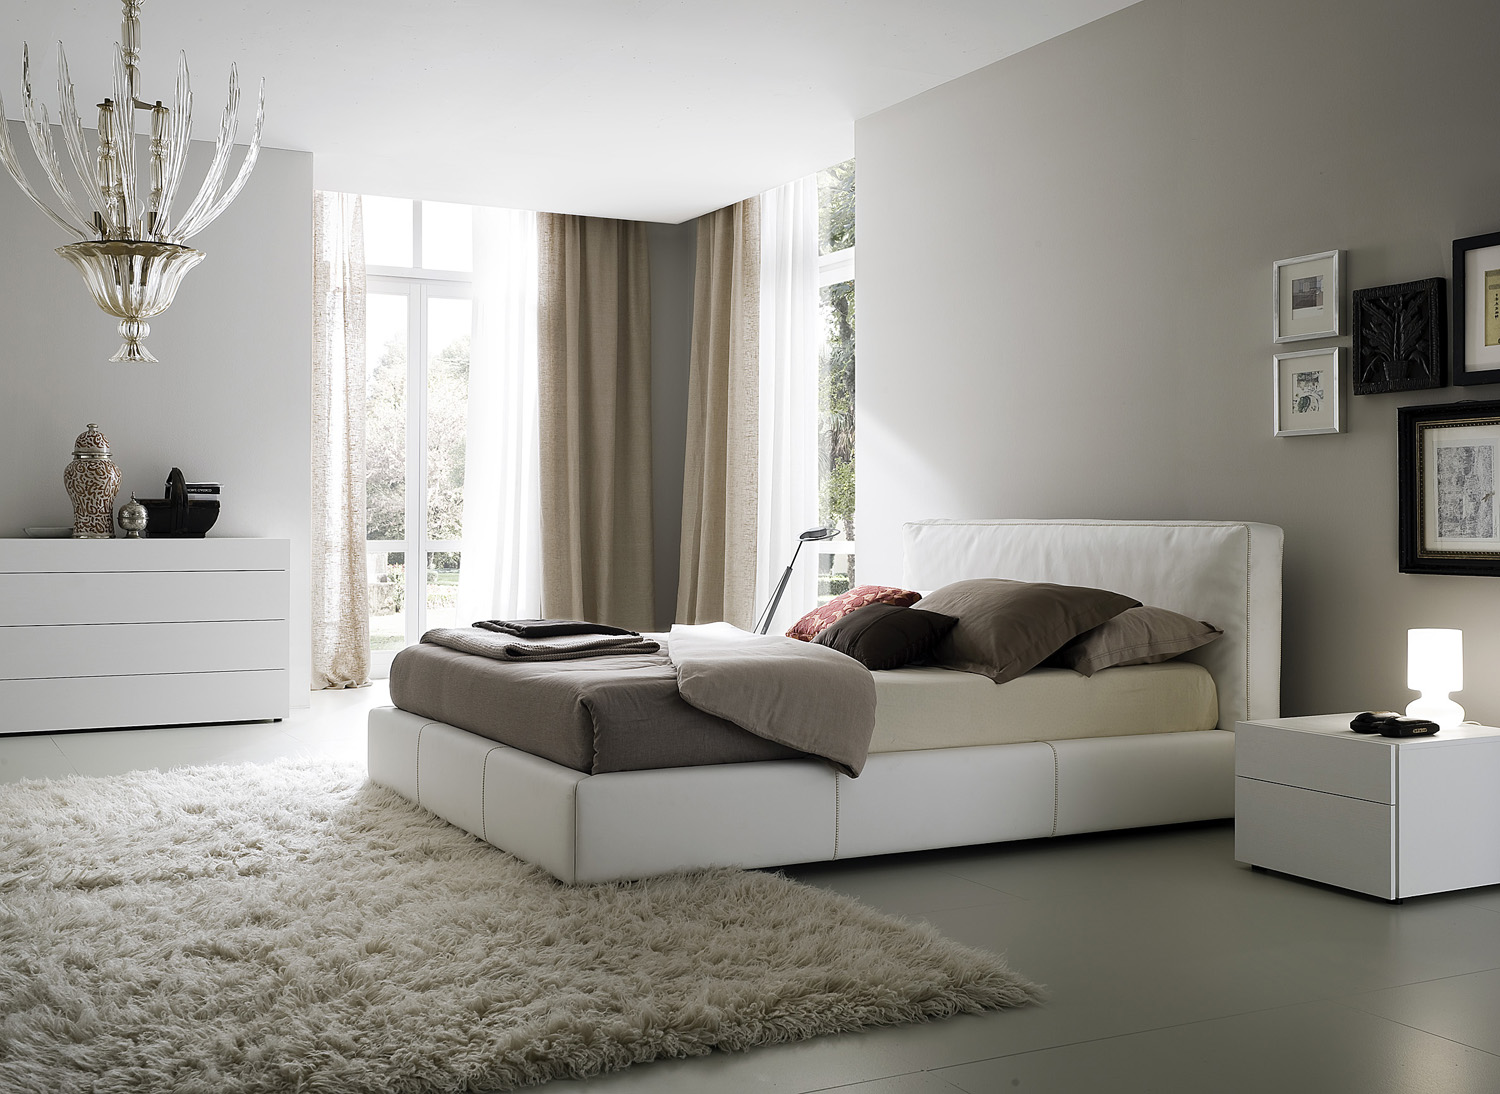 If you see a bedroom furnished with beautiful new furniture in a